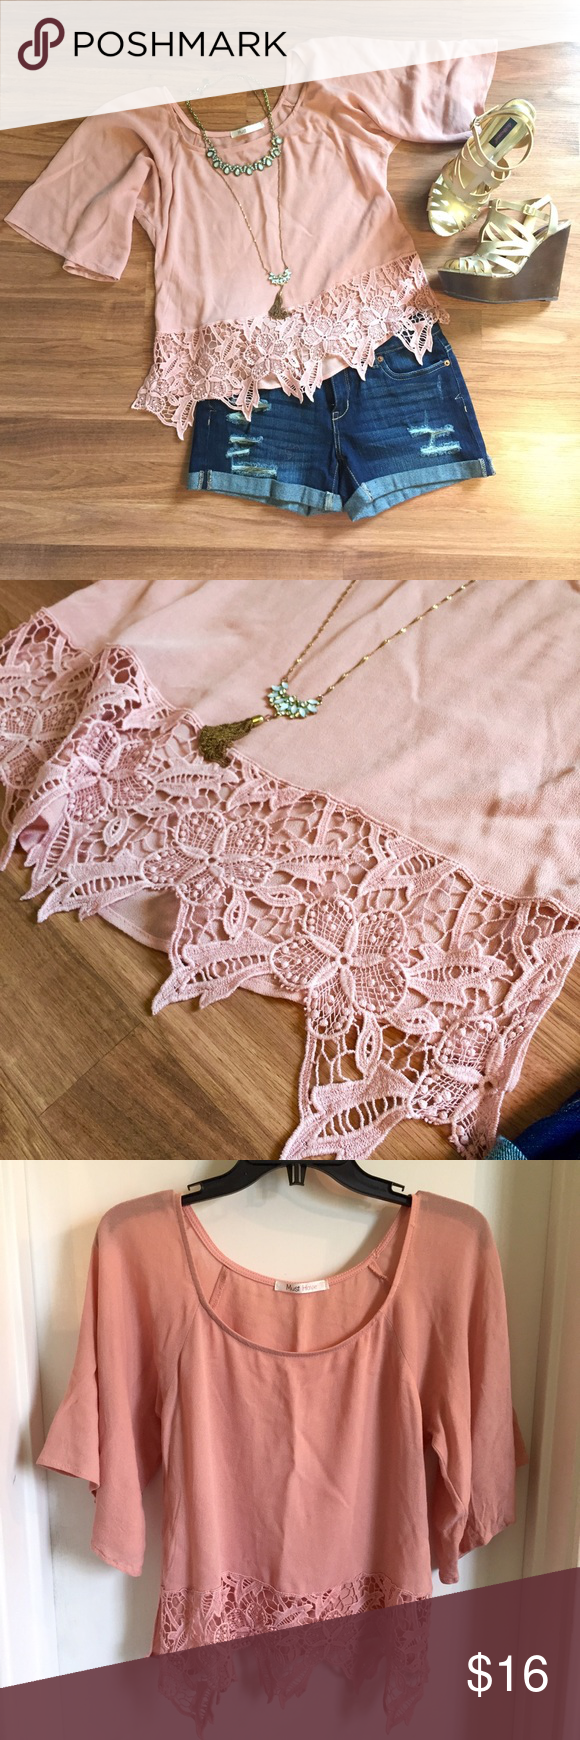 Rose blush pink crochet flutter sleeve top Beautiful blush colored top. Last two pictures show true color. Crochet hem detail. Flutter bell sleeve. Dress up or down. Light weight and soft. Great condition! OPEN TO OFFERS! DISCOUNTS ON BUNDLES! Francesca's Collections Tops